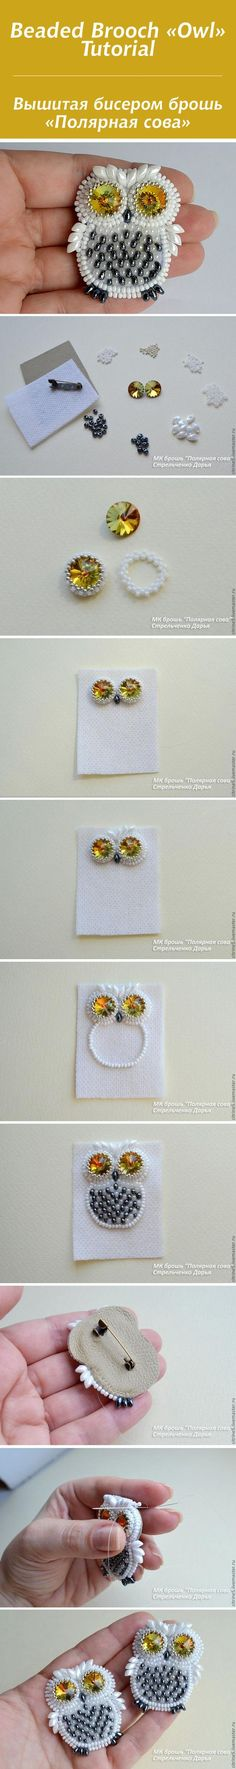 "Вышитая бисером брошь ""Полярная сова"" / Beaded Brooch ""Owl"" Tutorial #bead #tutorial:"